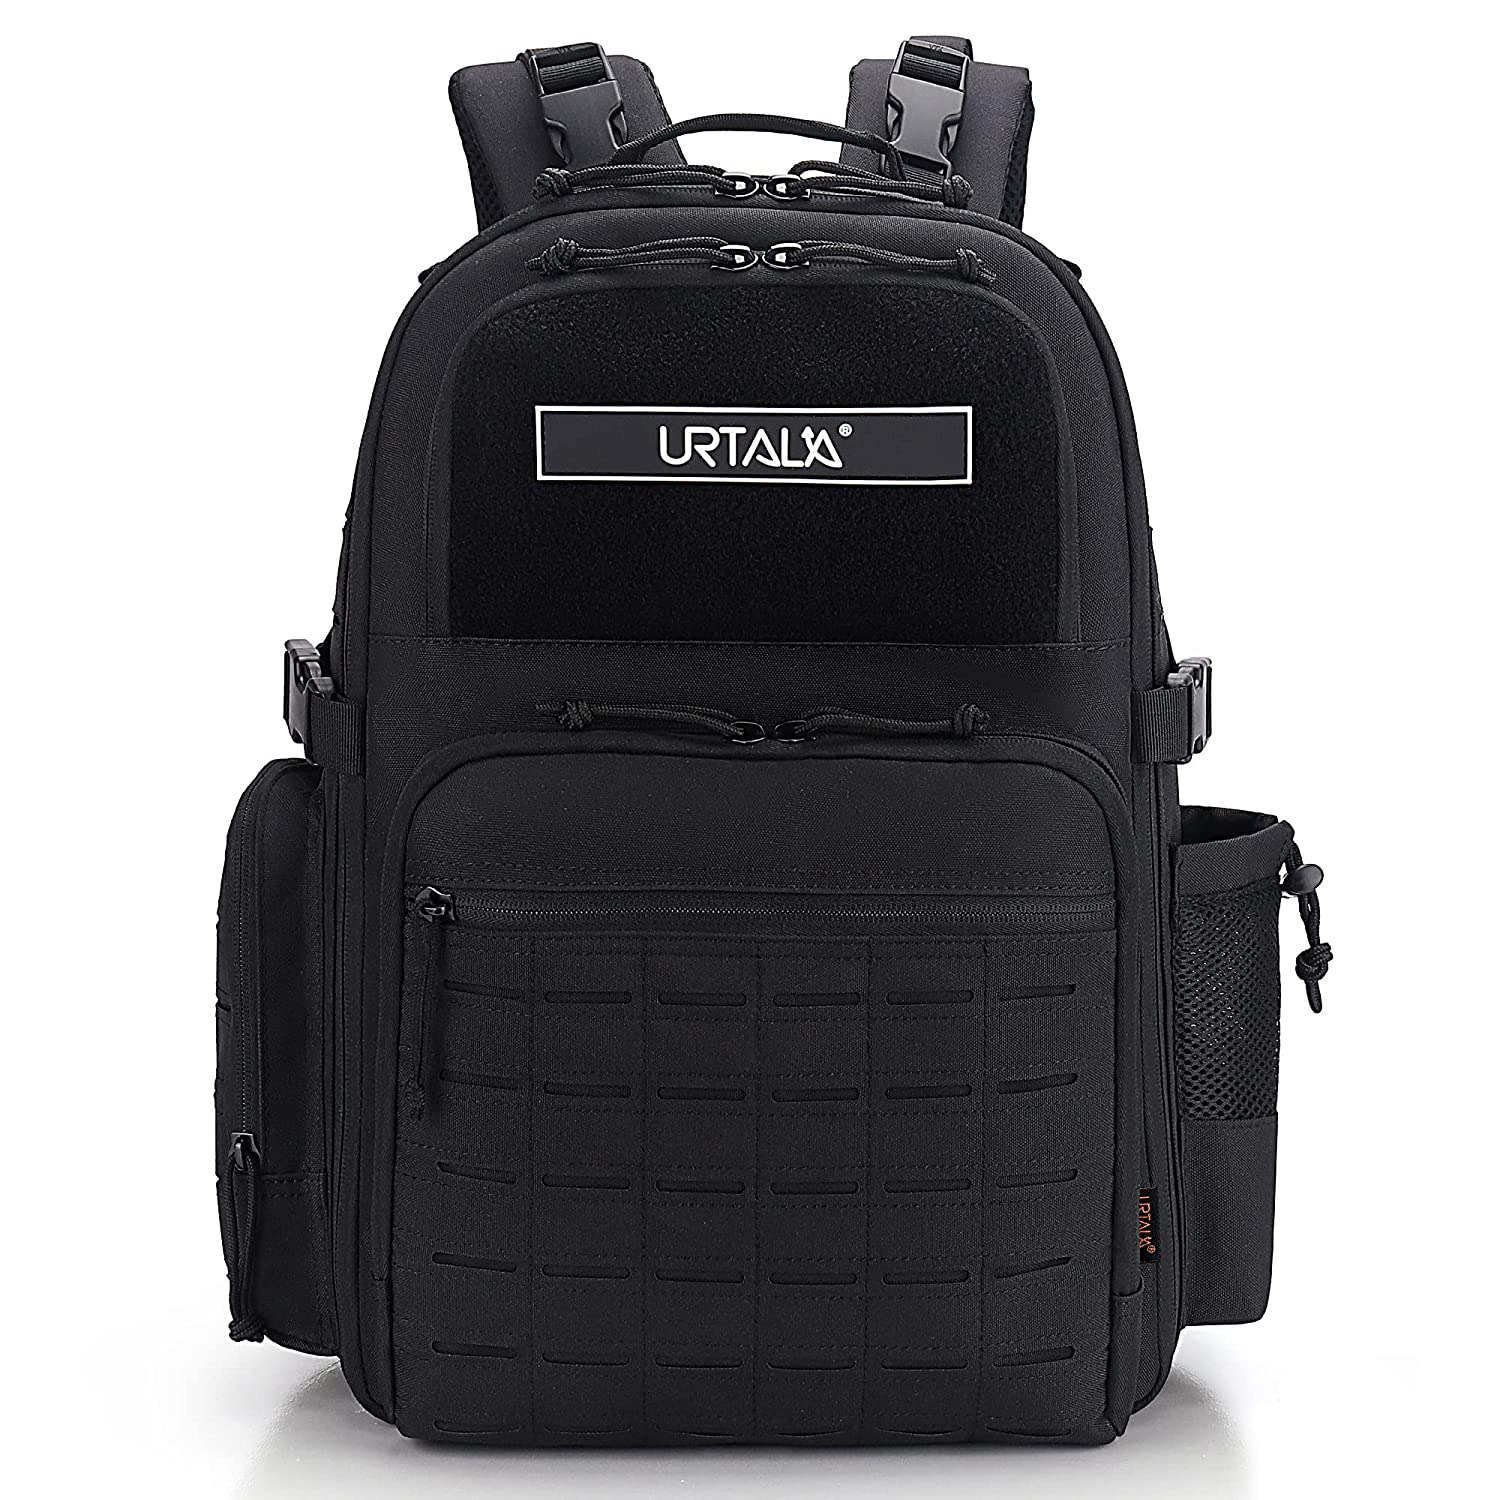 Diaper Bag Backpack for dad, Urtala Military Baby Bag for Mom/Boy/Girl, Large Travel Unisex Nappy Bag, Waterproof Maternity Back Pack with Wipe Dispenser, Stroller Strap, Patch & Insulated Pocket